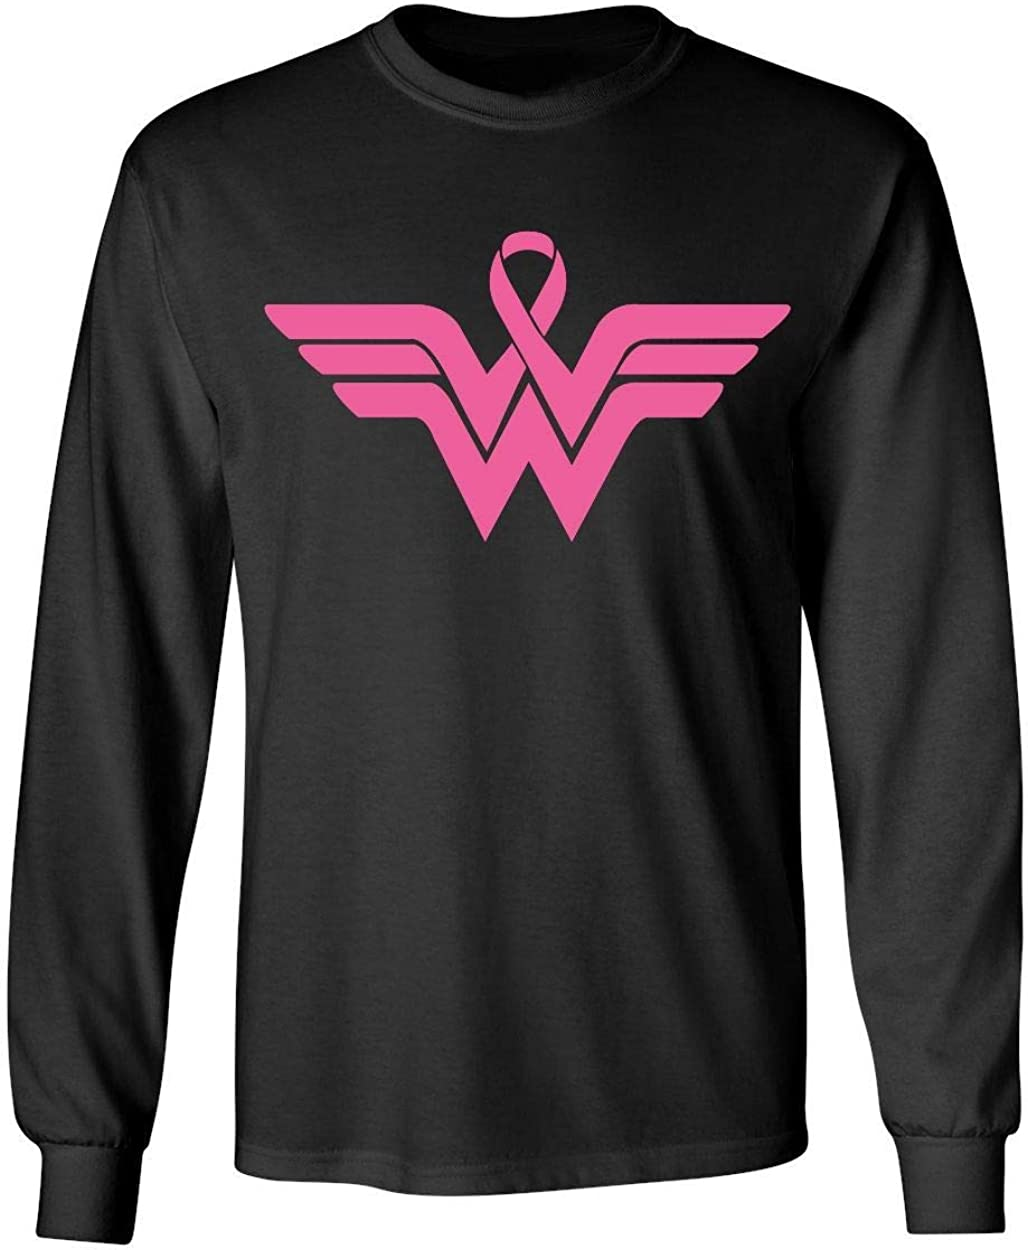 Kropsis White Heart Breast Cancer Awareness Womens T-Shirt